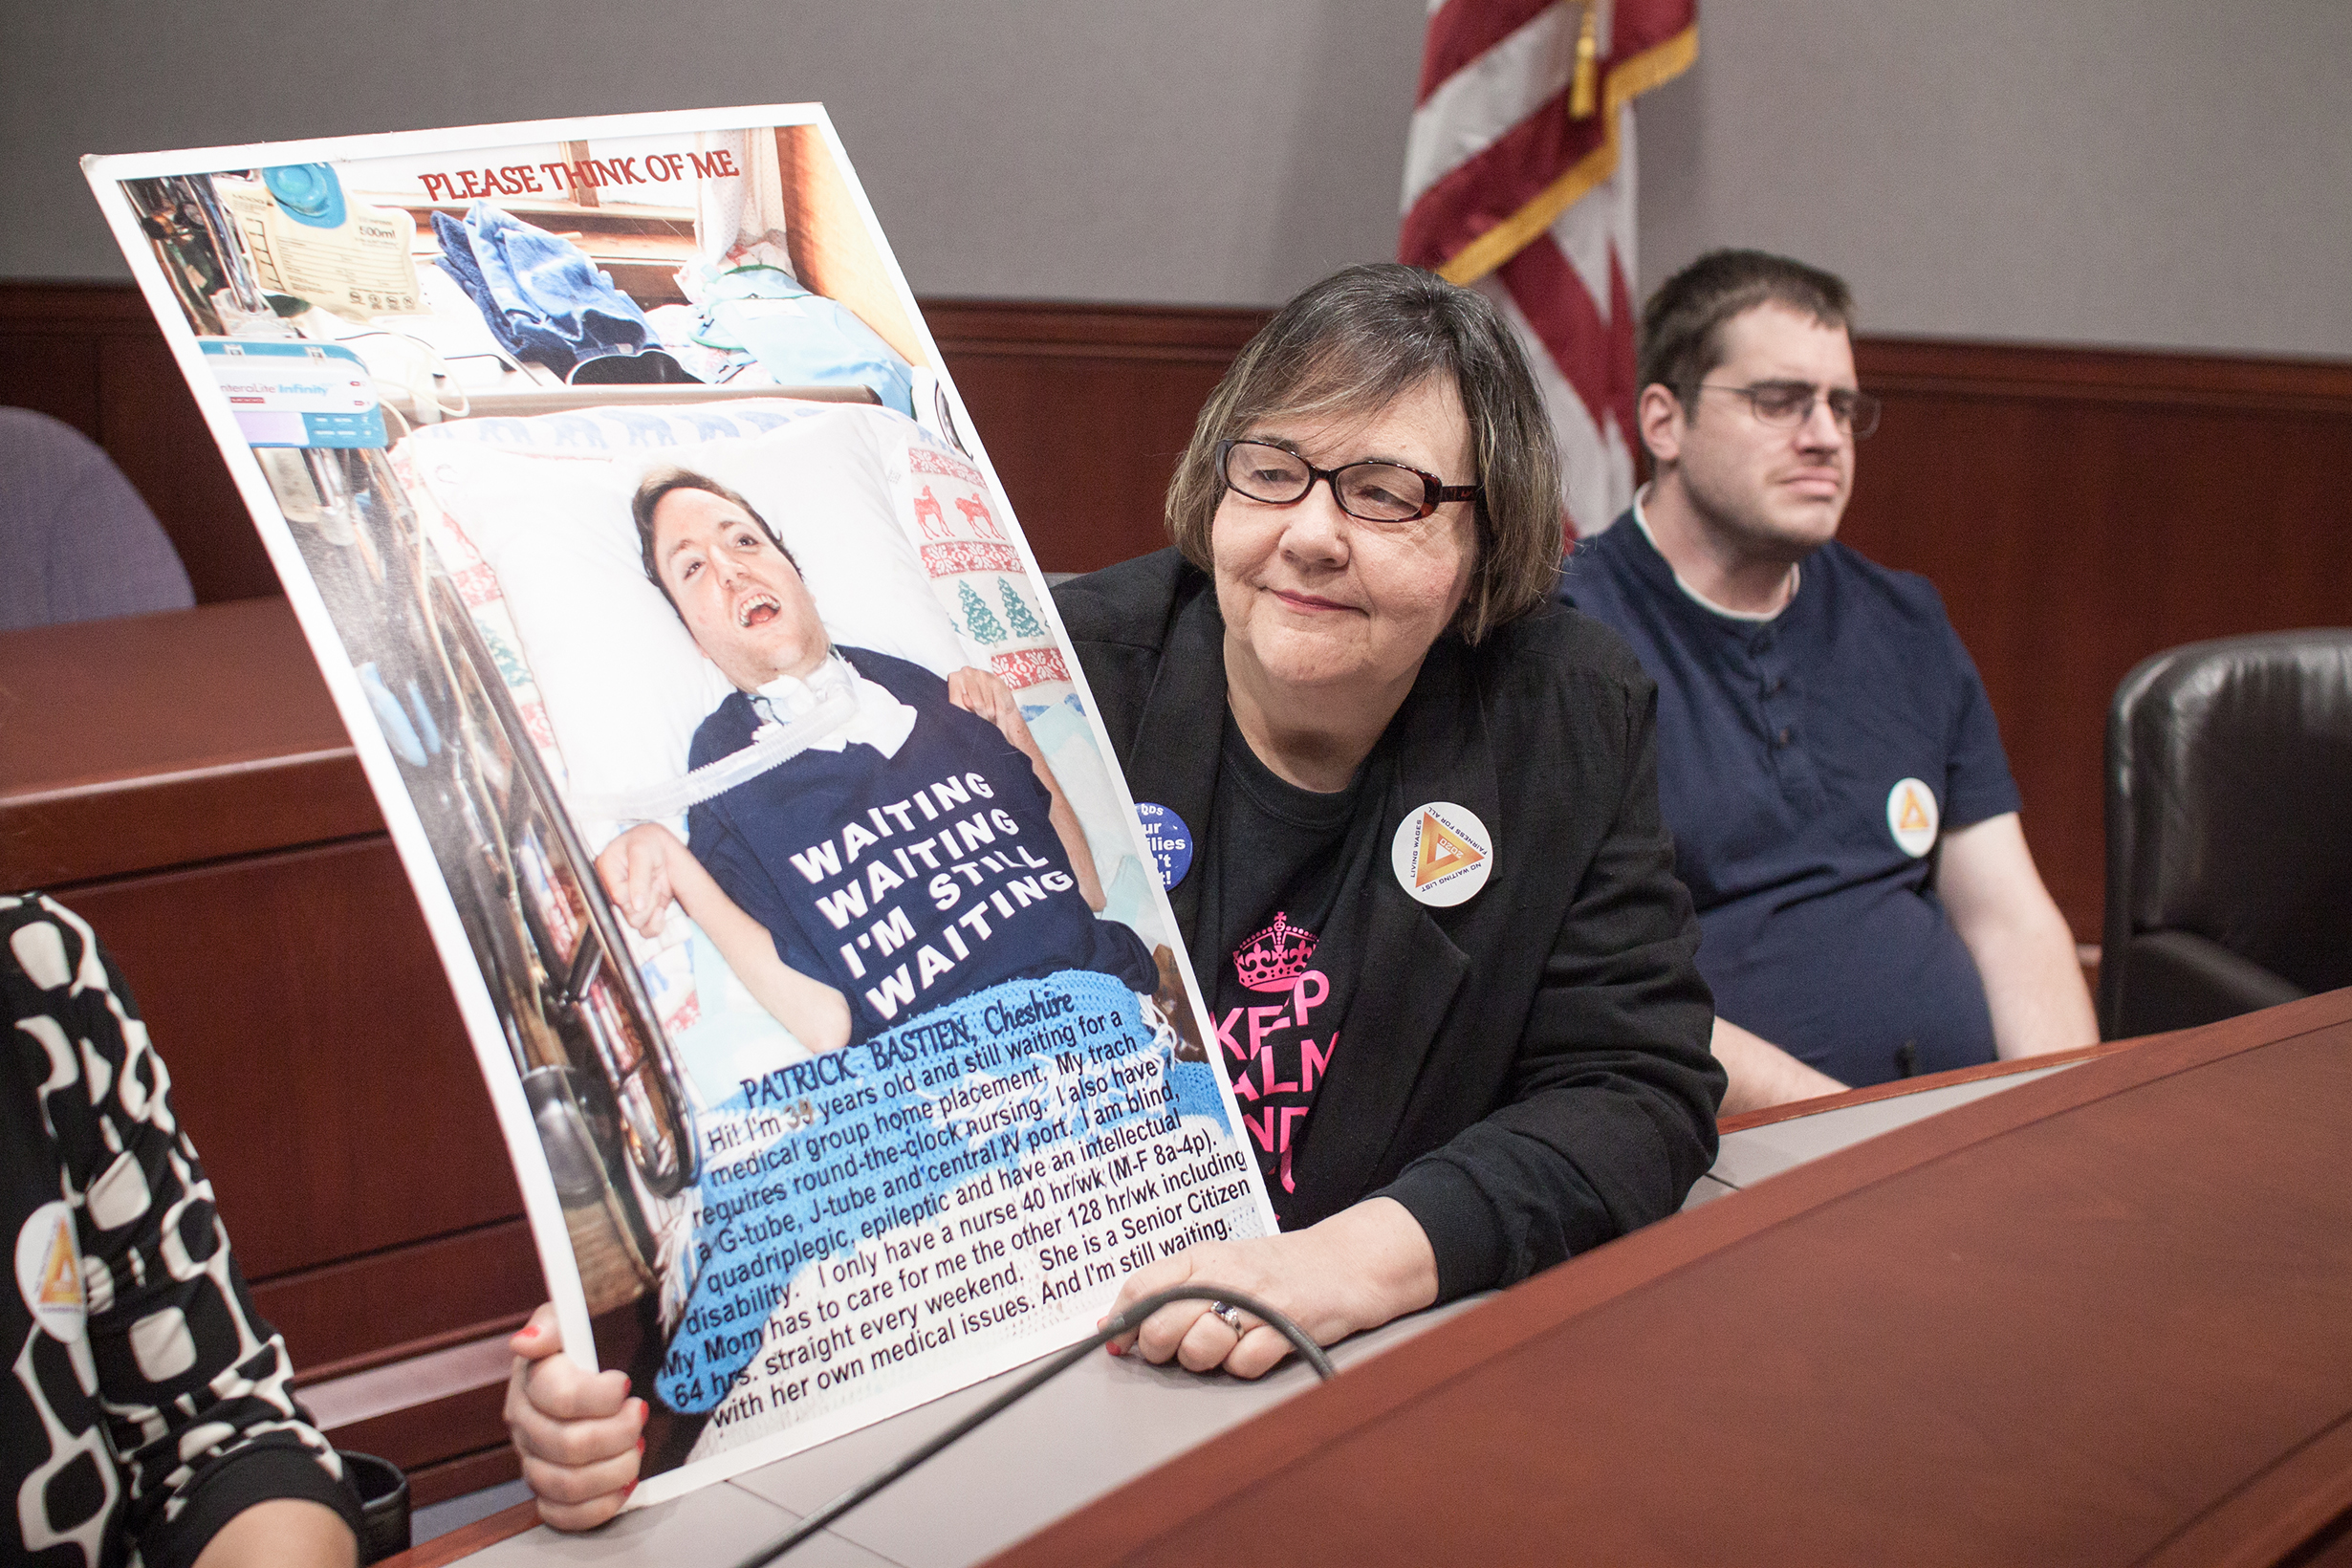 4.22.15 Press Conference and Petition March-15.JPG